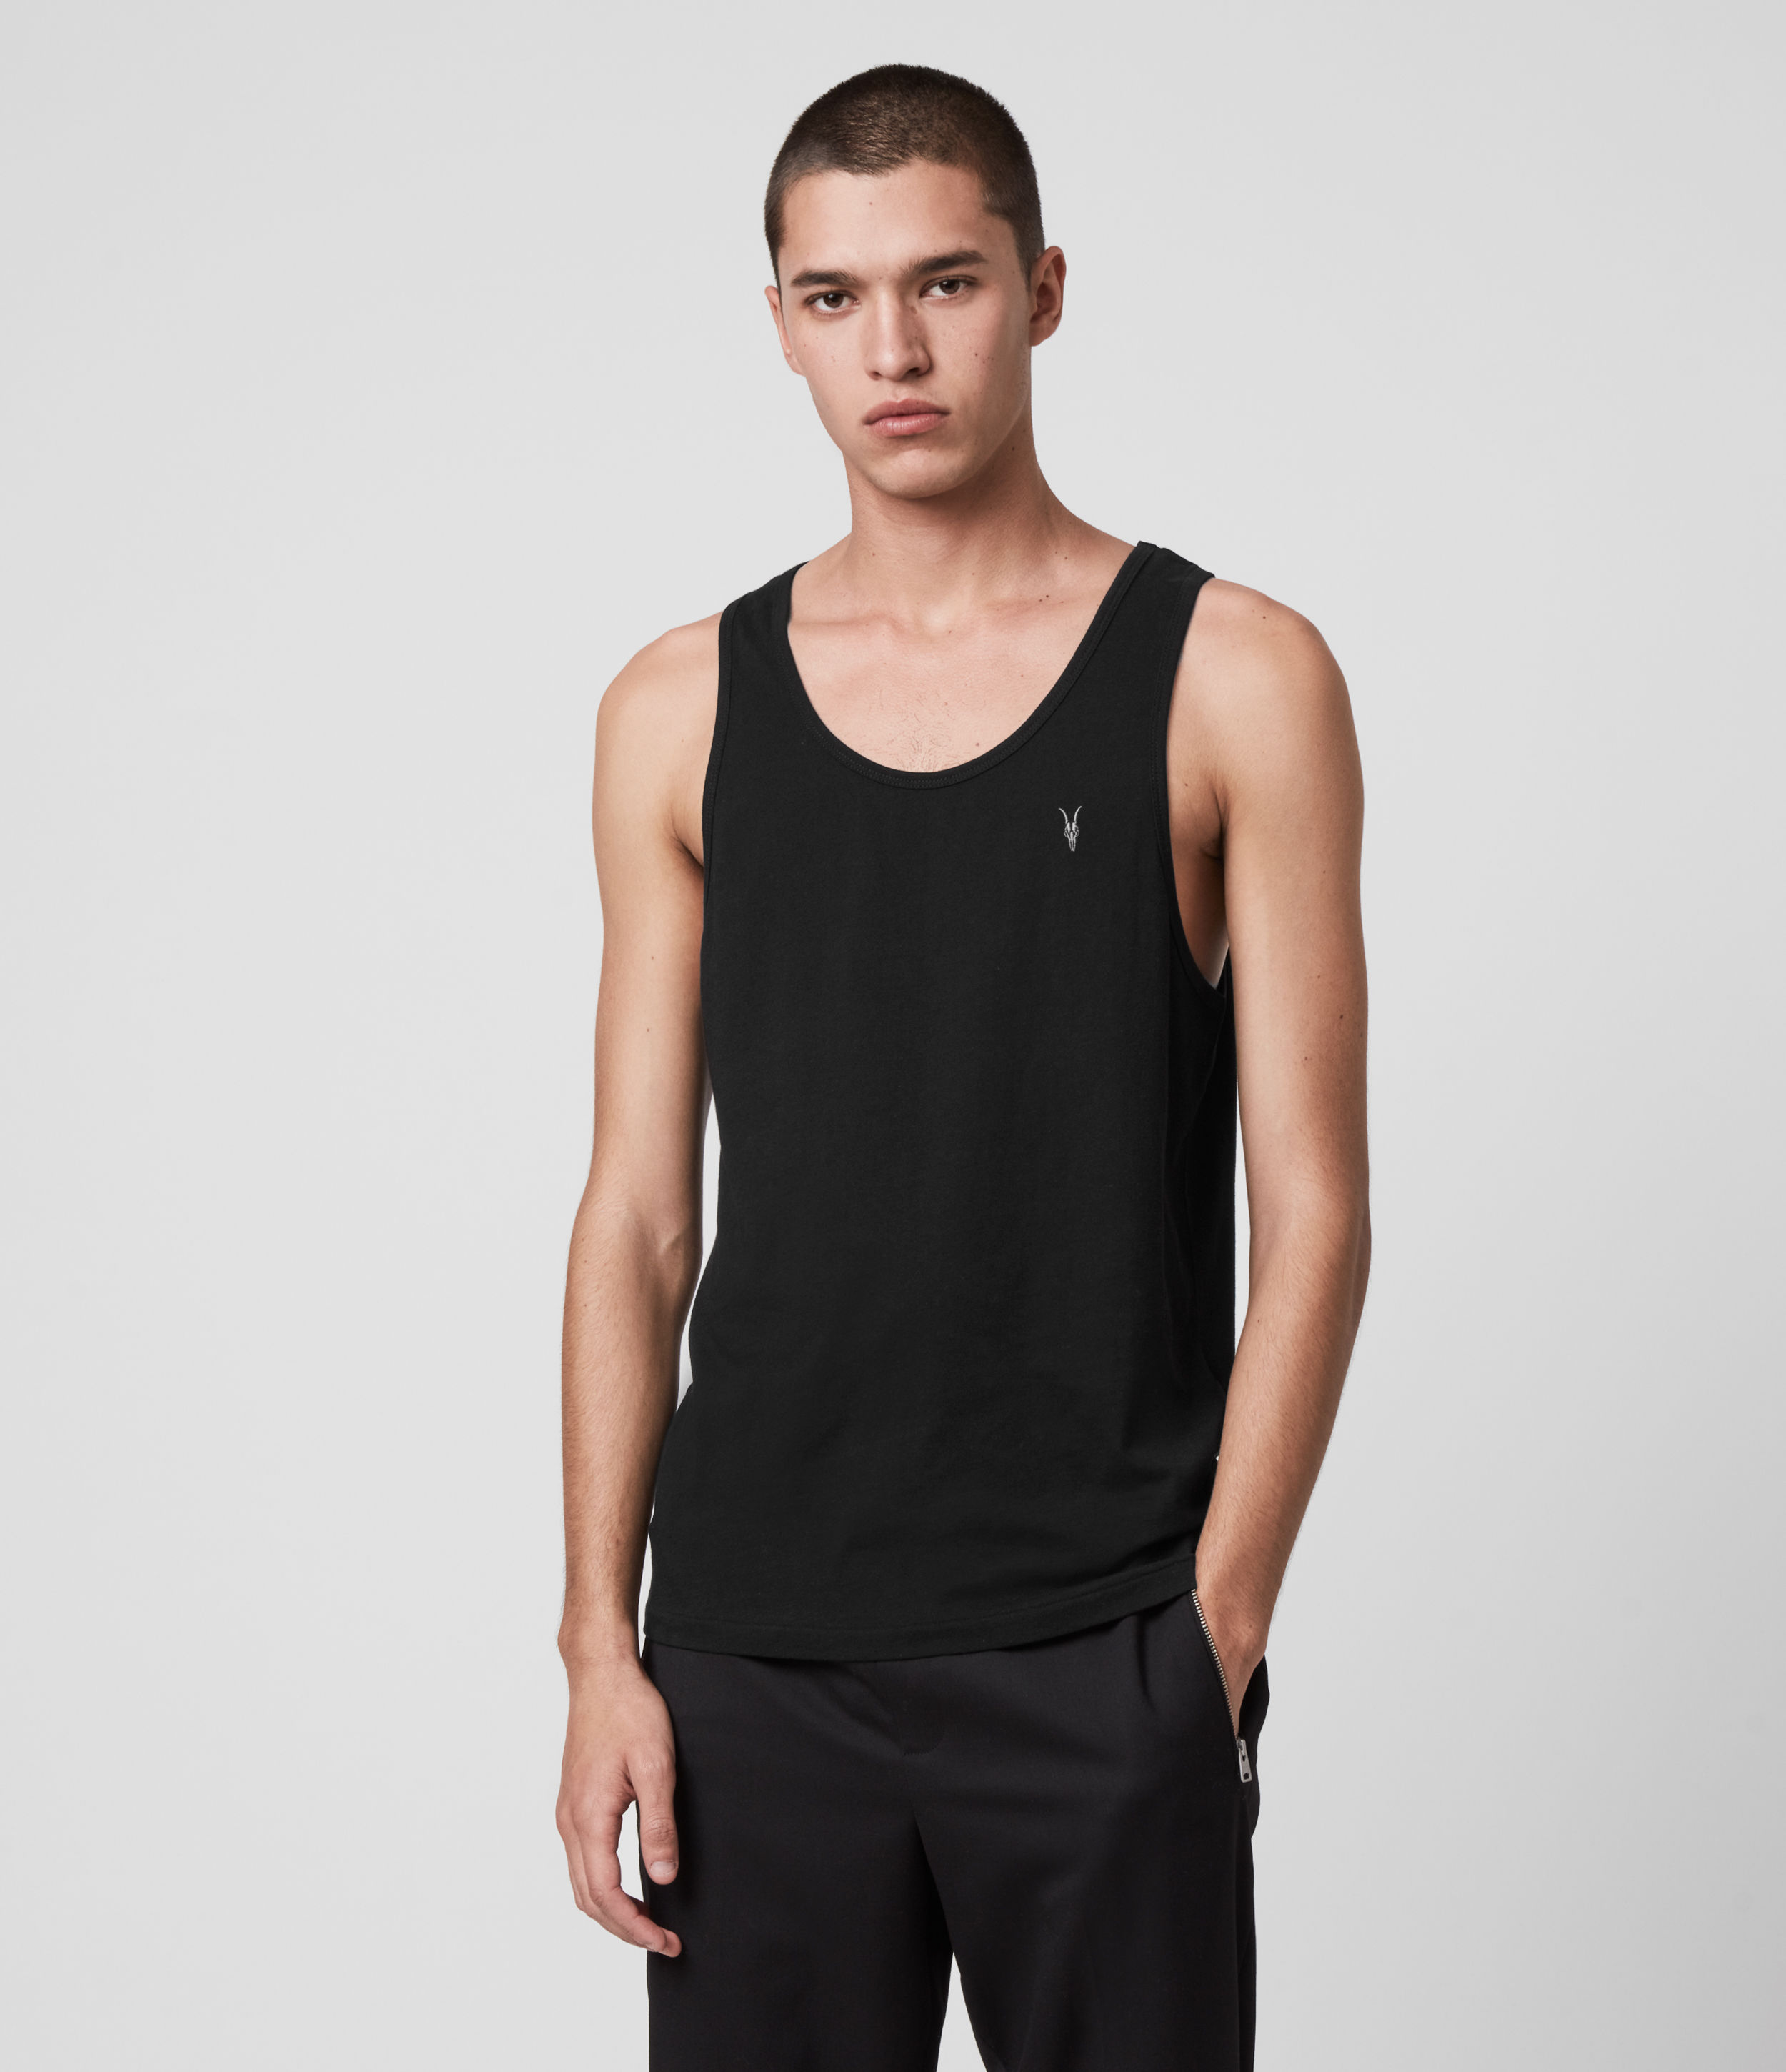 AllSaints Men's Cotton Lightweight Tonic Vest, Black, Size: XXL